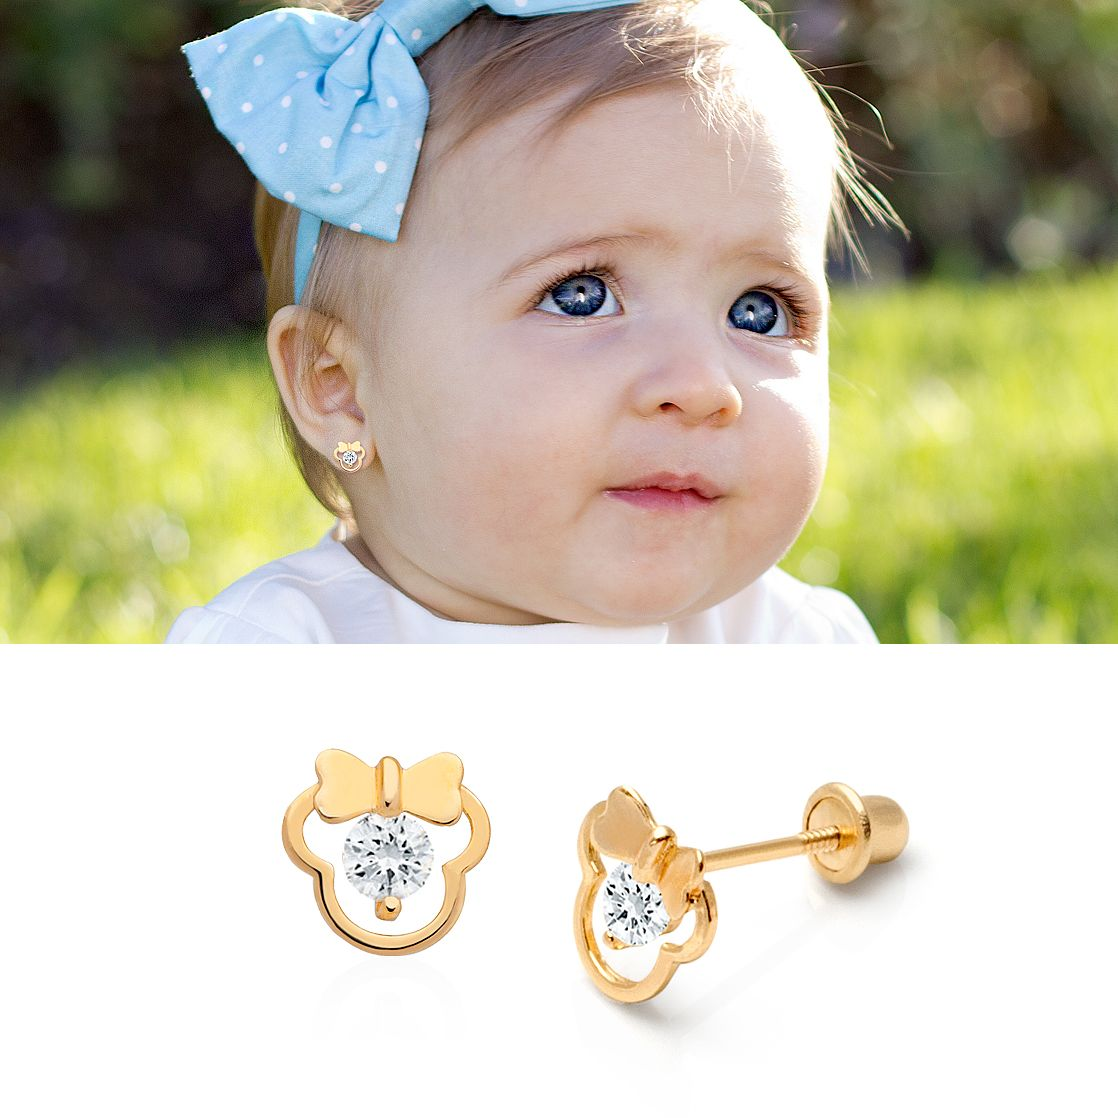 Solid Gold Back Earrings For Children Harper